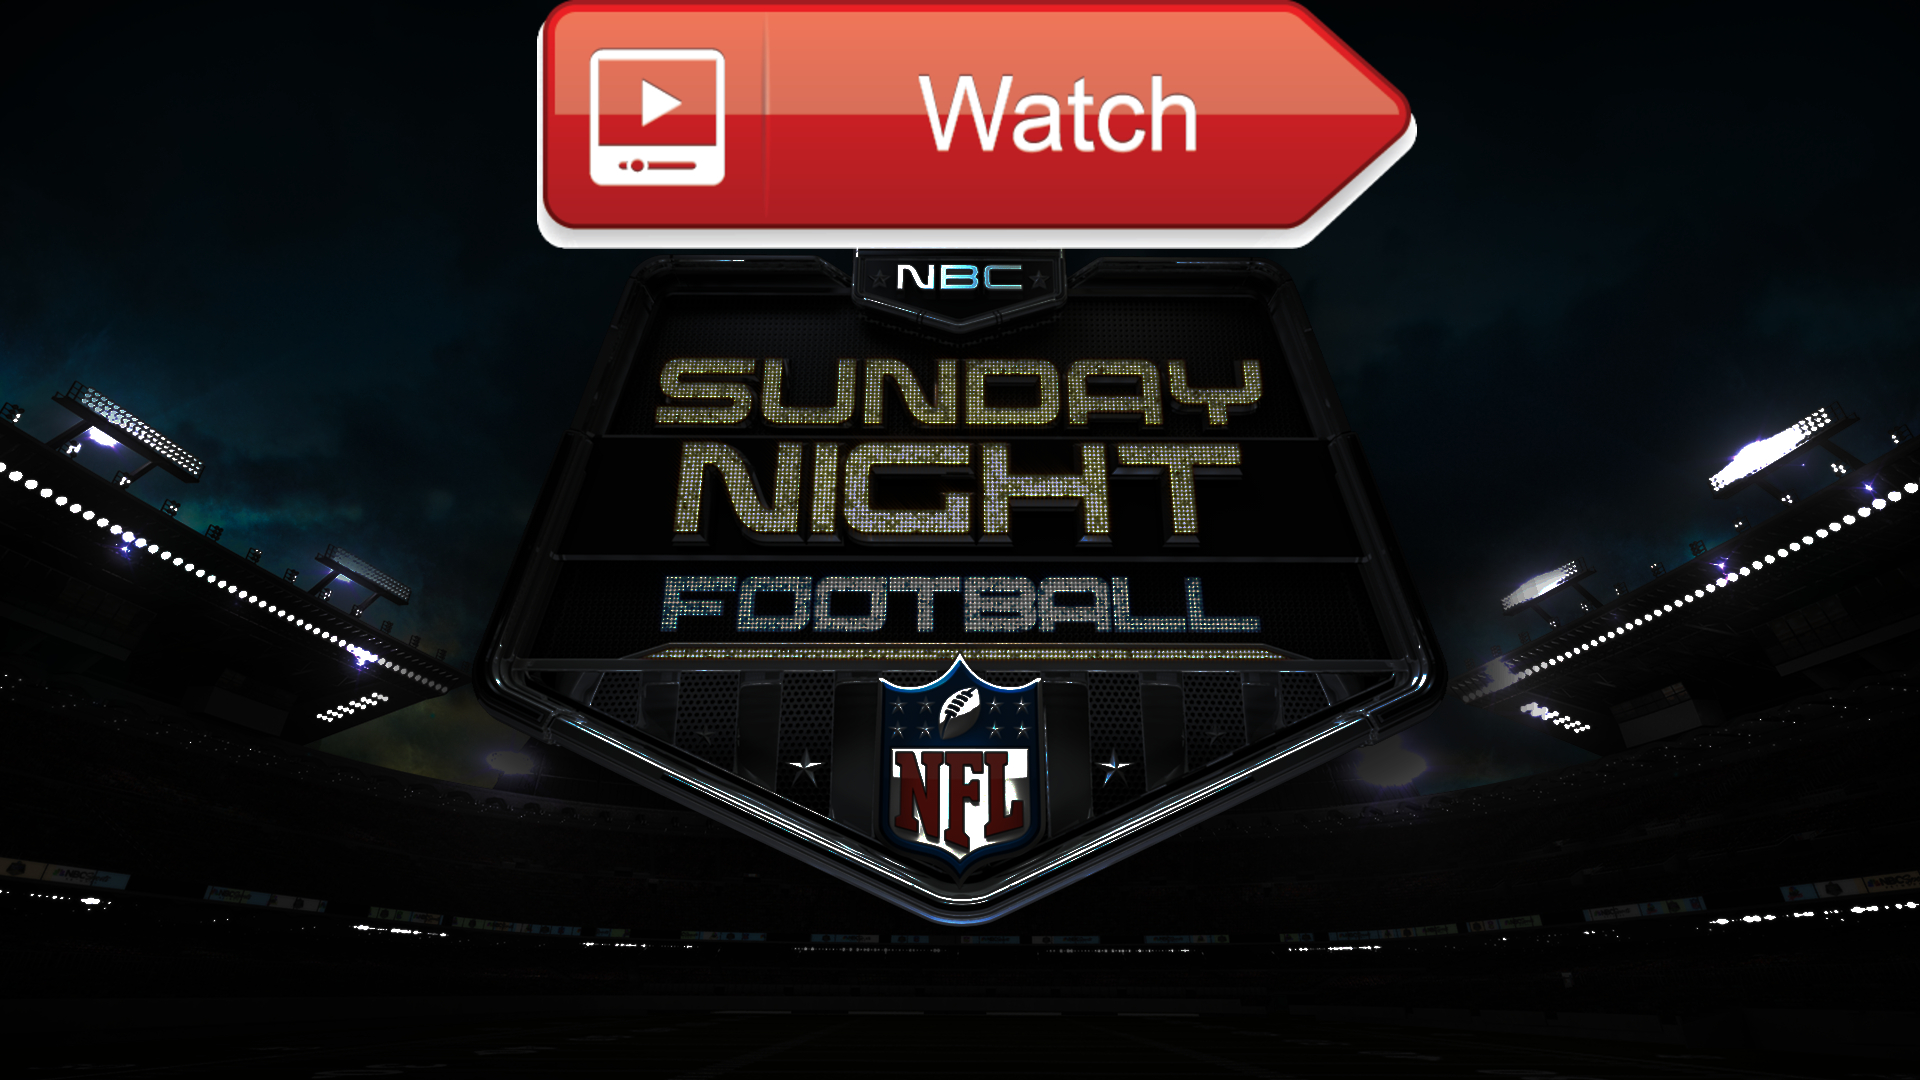 Sunday Night Football Live stream on reddit 2020: Watch NFL Football Games, Tv Schedule, Channel, Online FREE